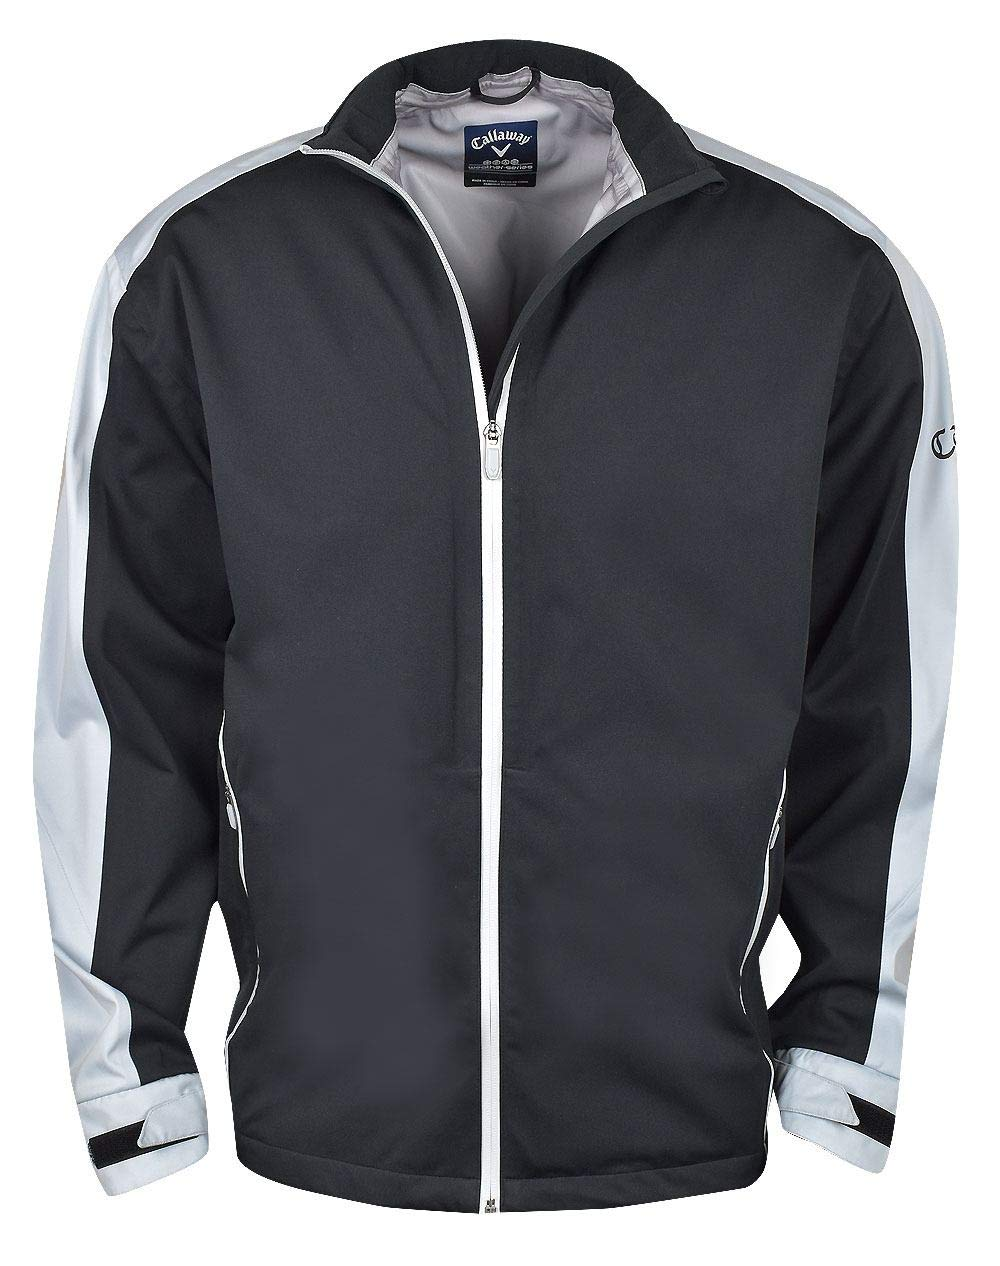 Callaway Men's Waterproof Full-zip Golf Jacket, Caviar, Large by Callaway